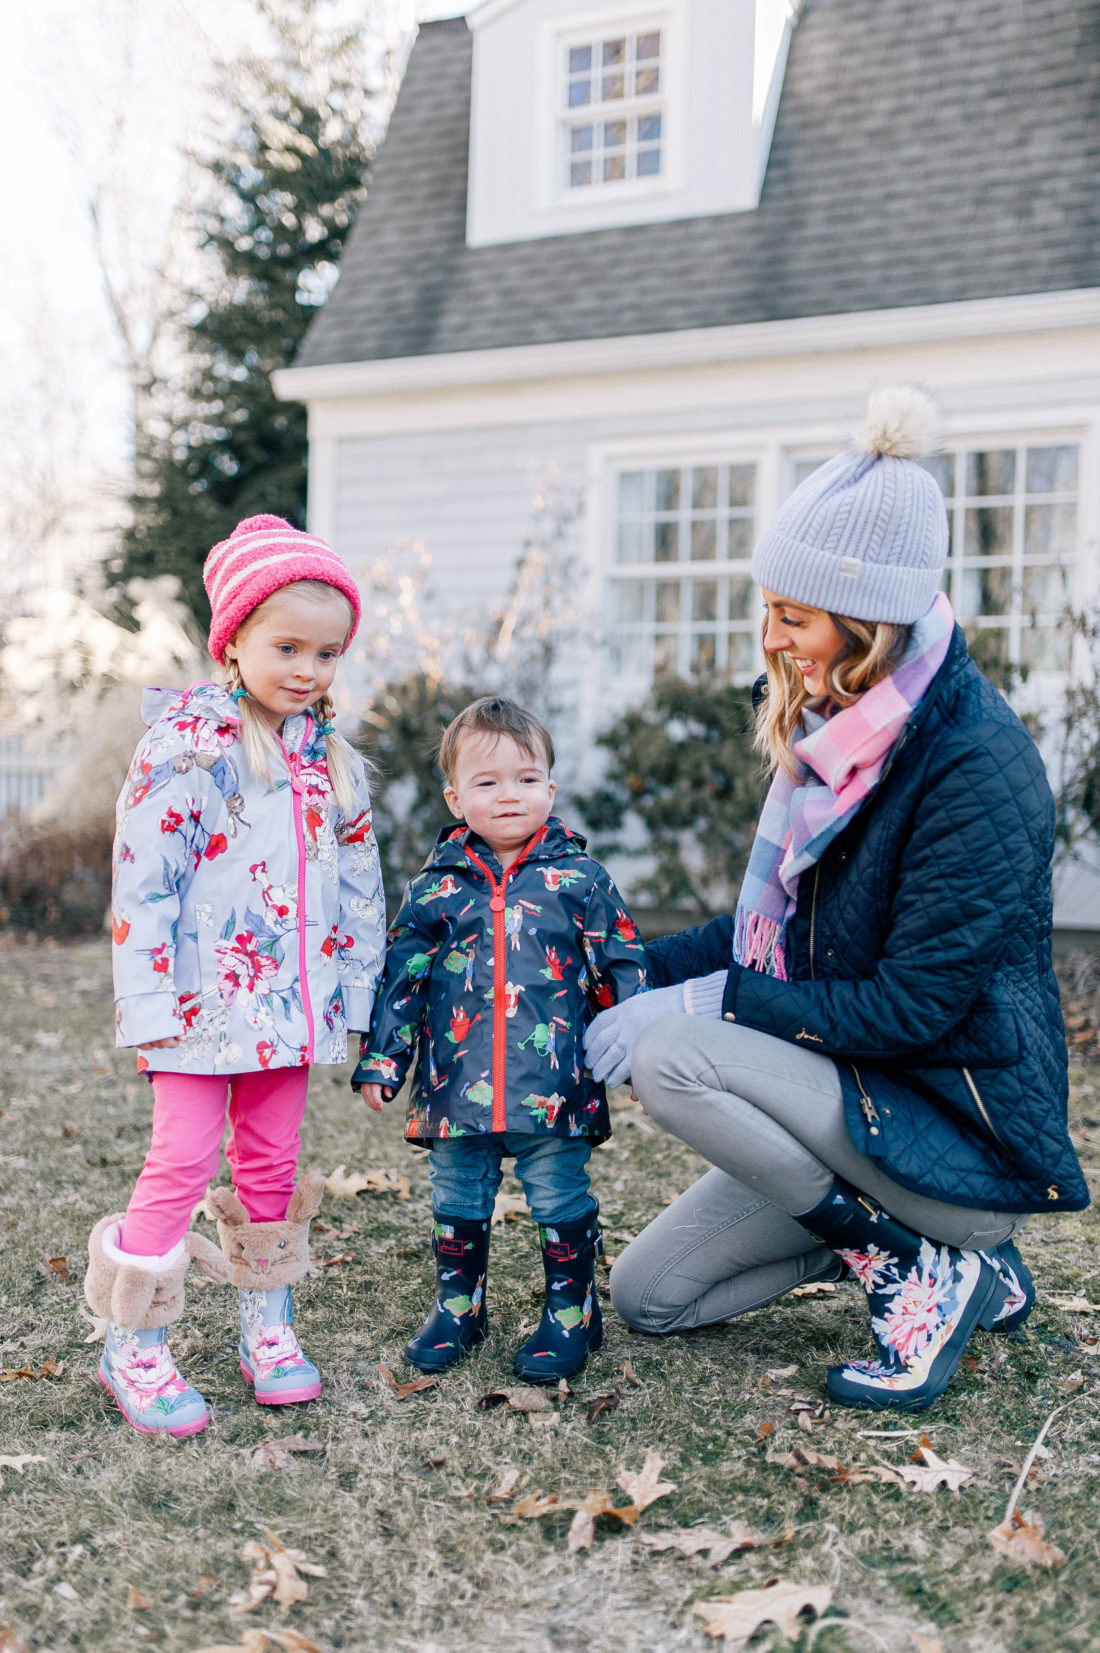 Eva Amurri Martino gets her two children bundled up in rain boots and coats to play outside of their Connecticut home